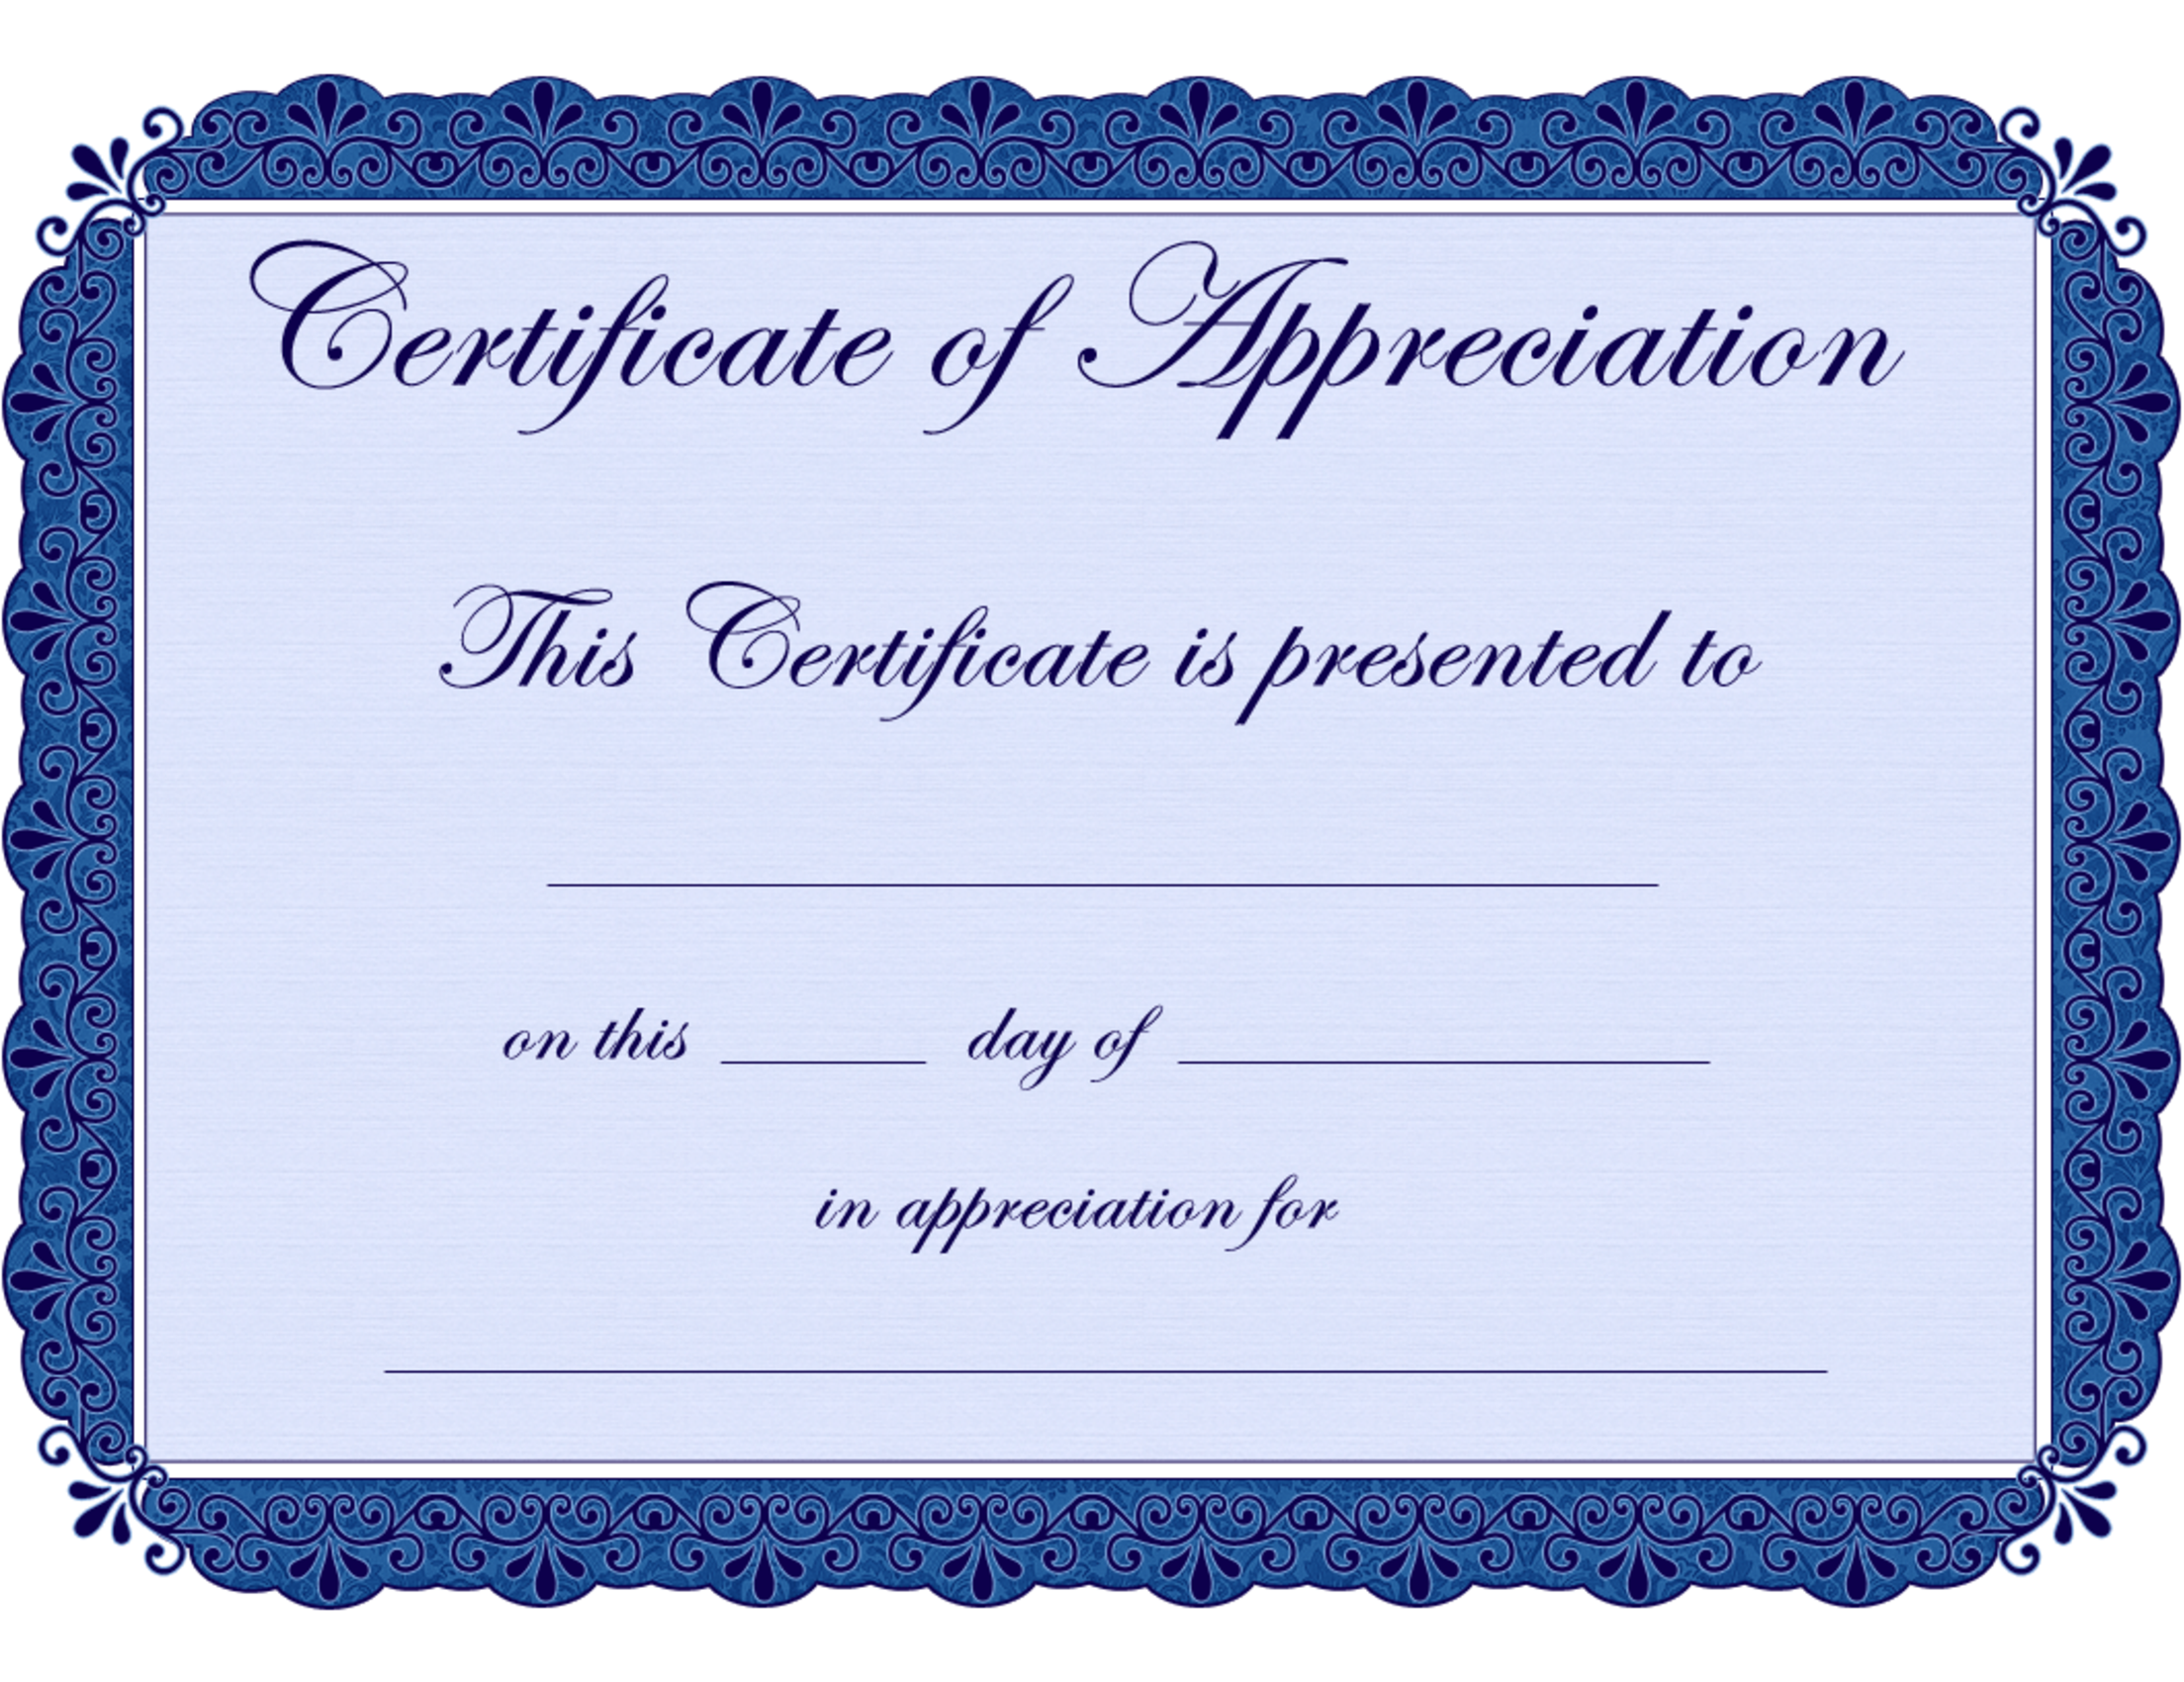 Free printable certificates certificate of appreciation certificate free printable certificates certificate of appreciation certificate free gift certificate templatefree yadclub Choice Image